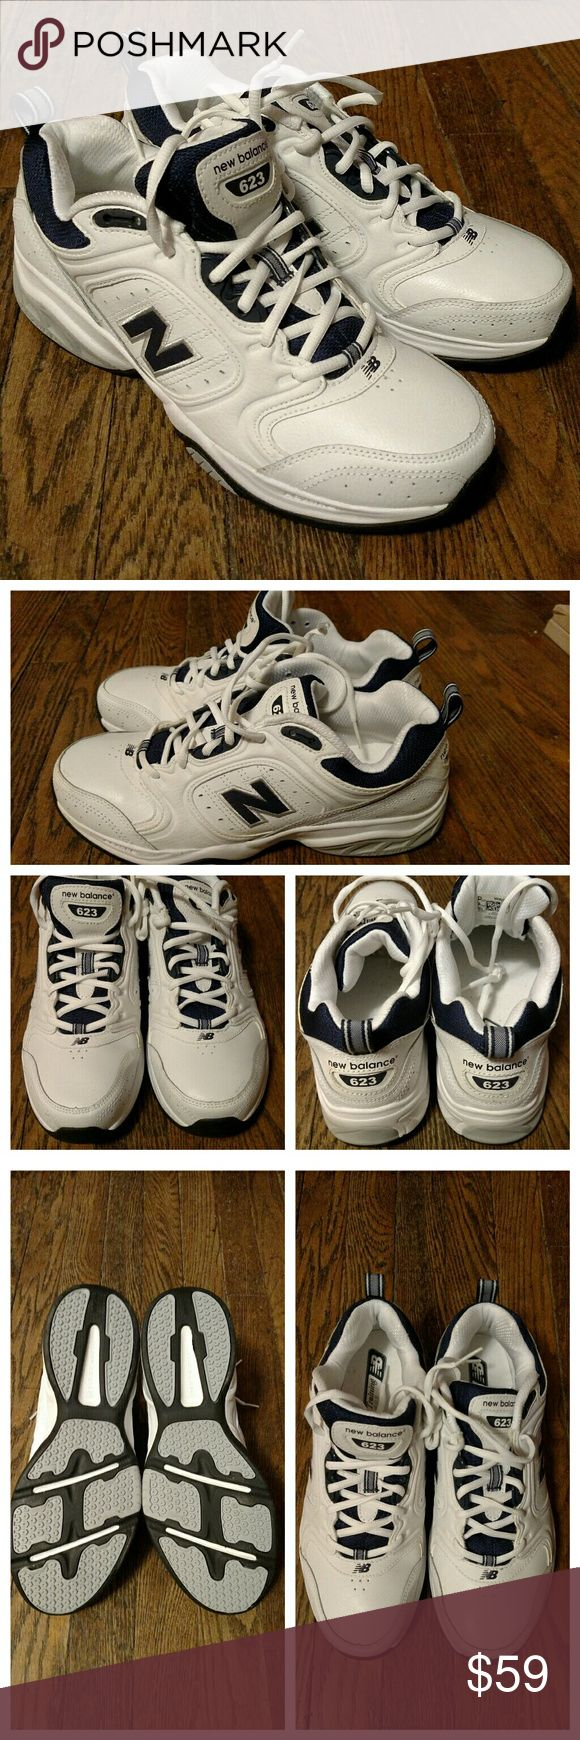 New Balance 623 Training Shoes Size 9D They are brand new but without a box. New Balance Shoes Athletic Shoes